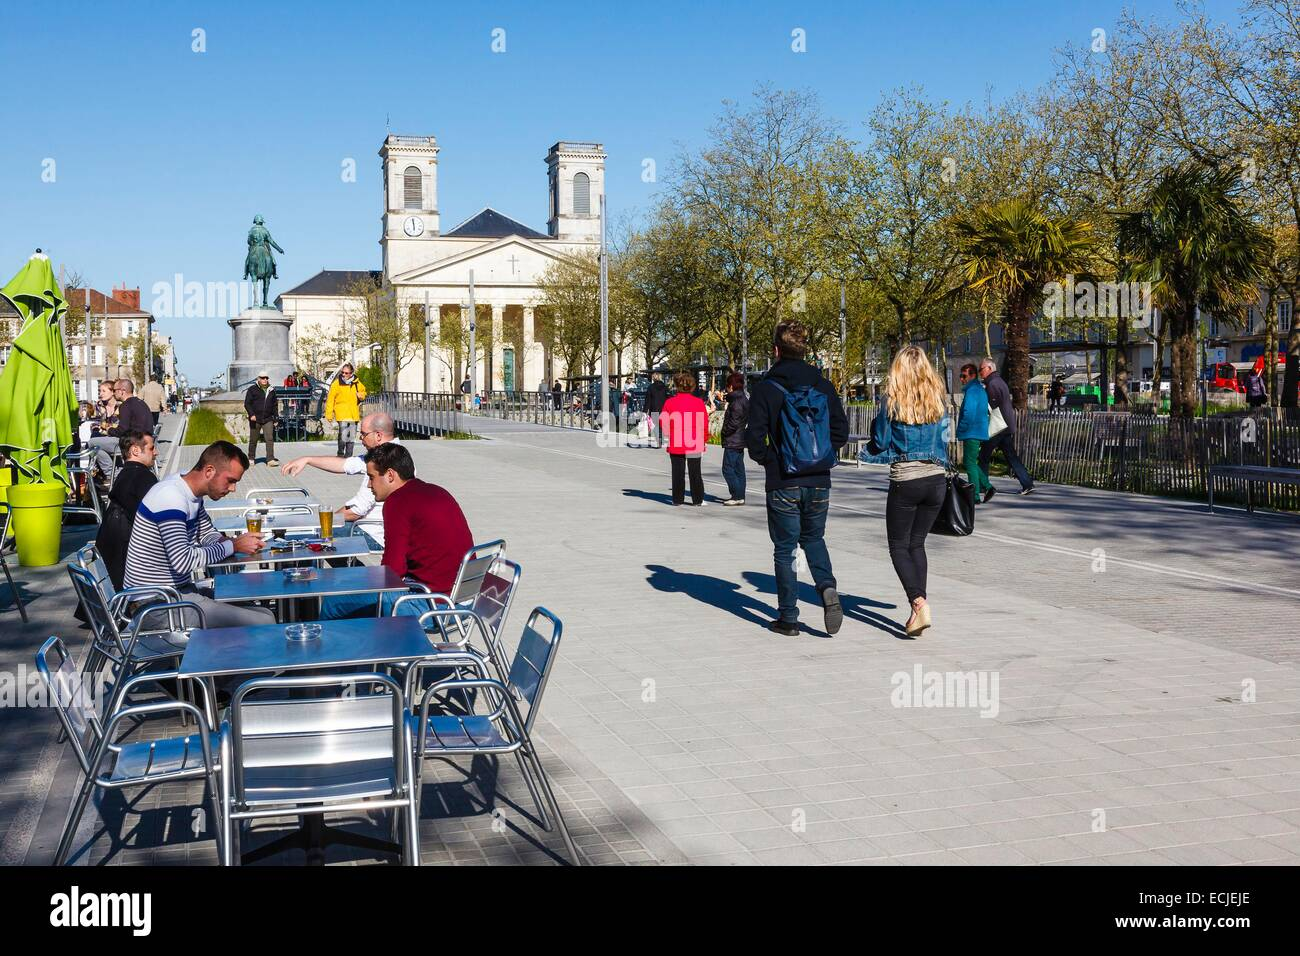 france vendee la roche sur yon napoleon square cafe terrace and stock photo royalty free. Black Bedroom Furniture Sets. Home Design Ideas